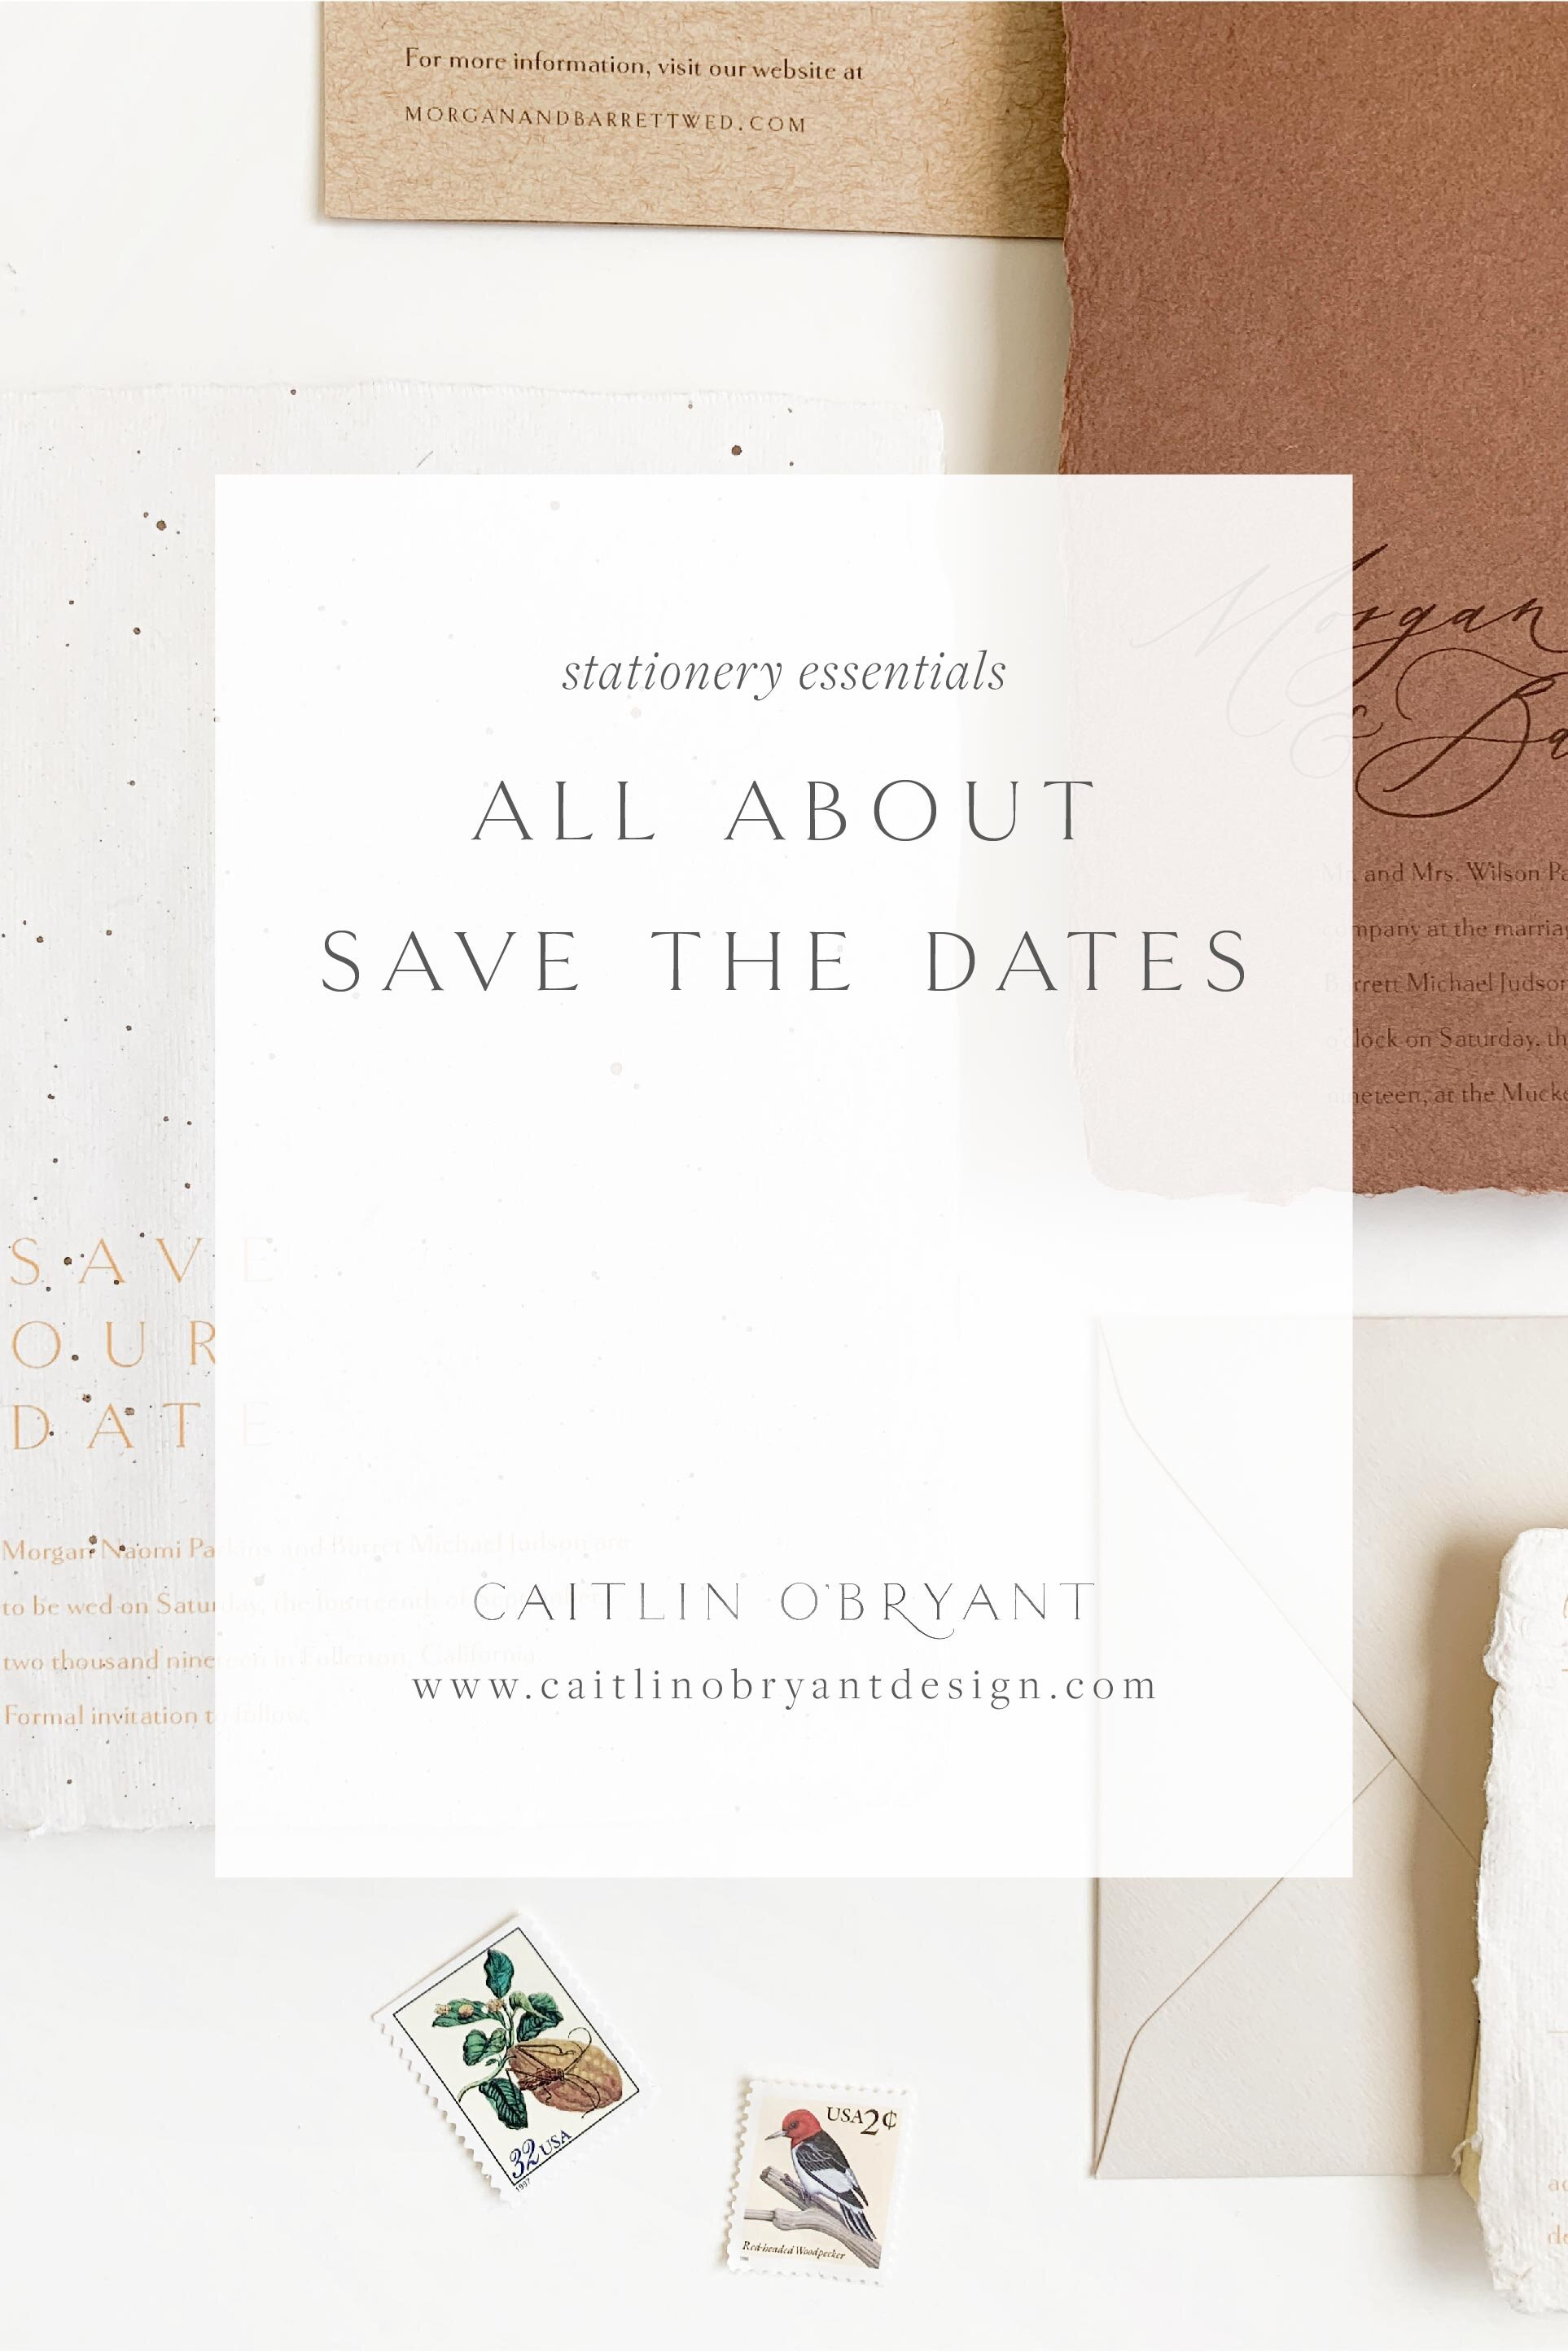 All About Save the Dates. When to order save the dates. What information should go on a save the date. When to send save the dates. Save the date 101. Custom save the dates. Custom wedding stationery.